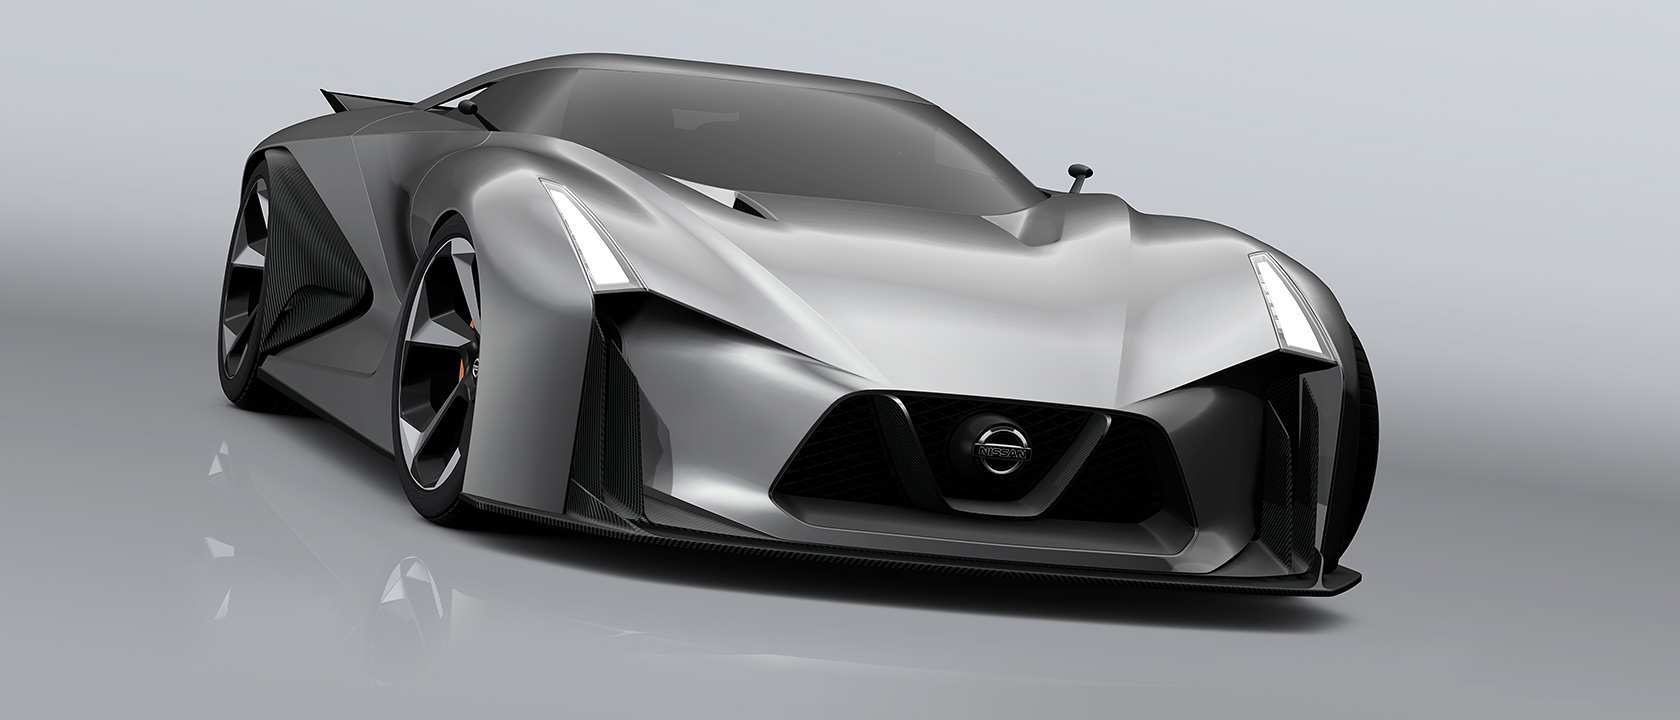 21 New Nissan Concept 2020 Picture